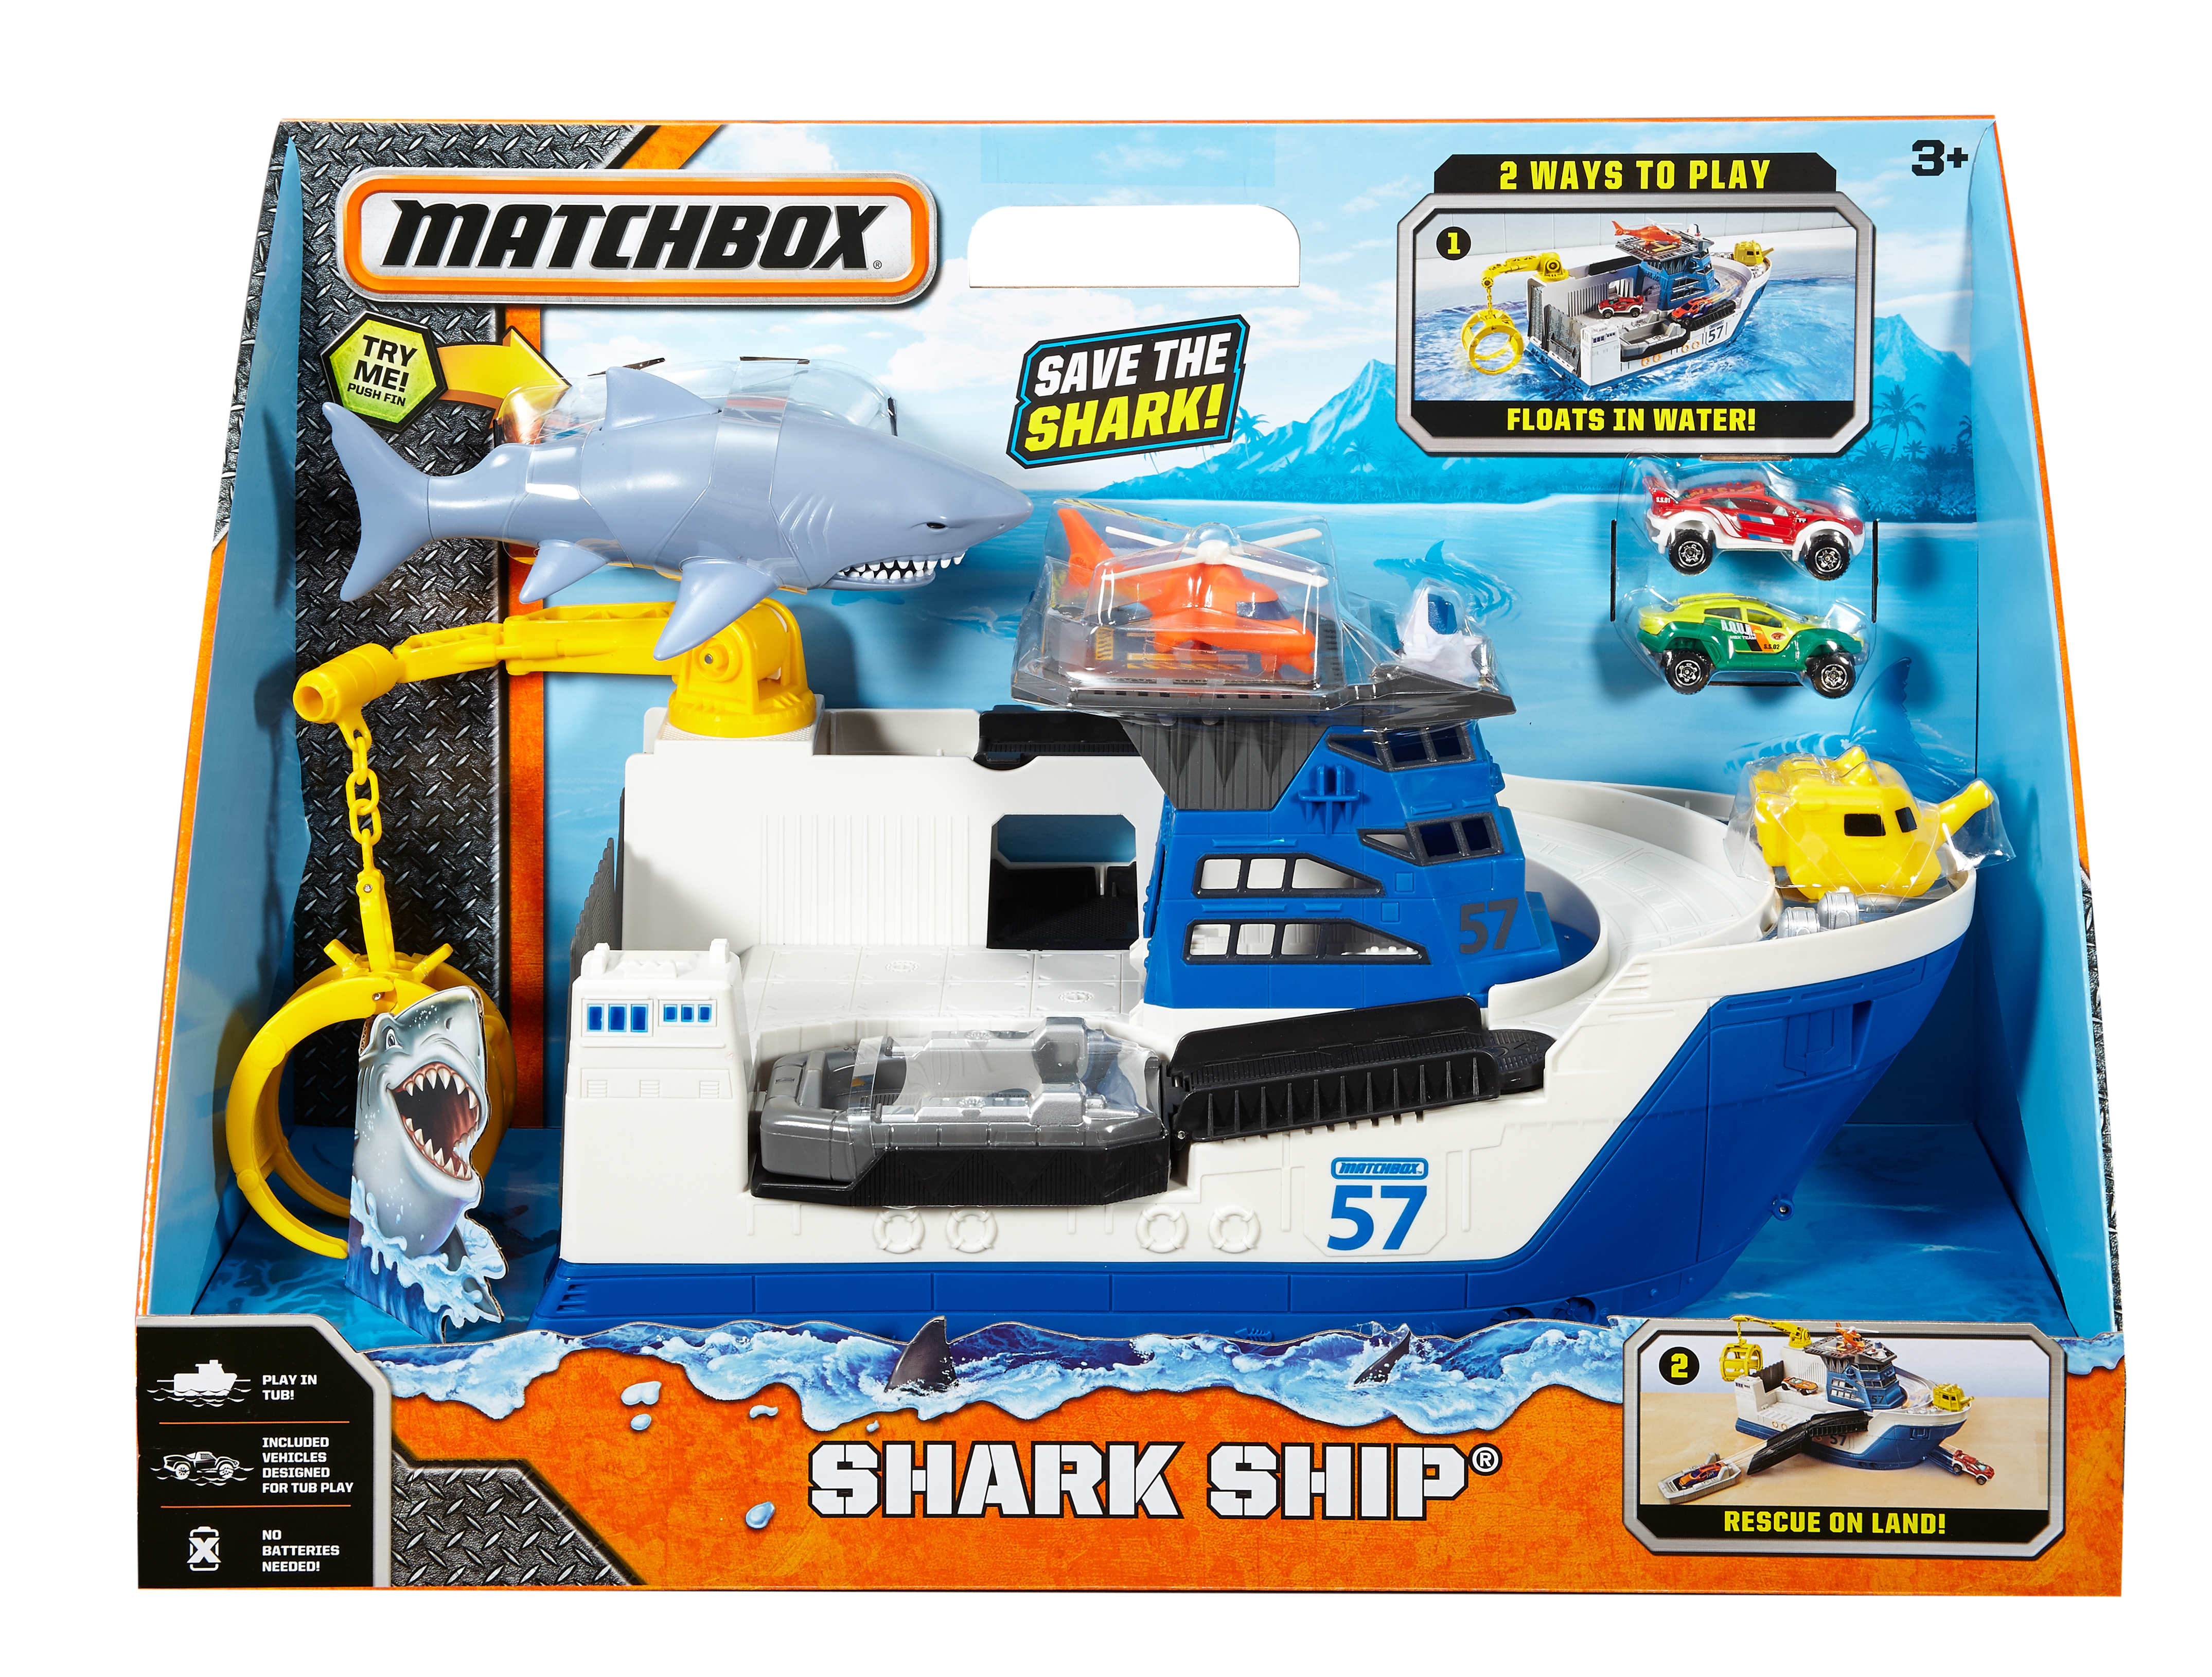 Shark Ship Toy : Matchbox car go commander shark ship ebay